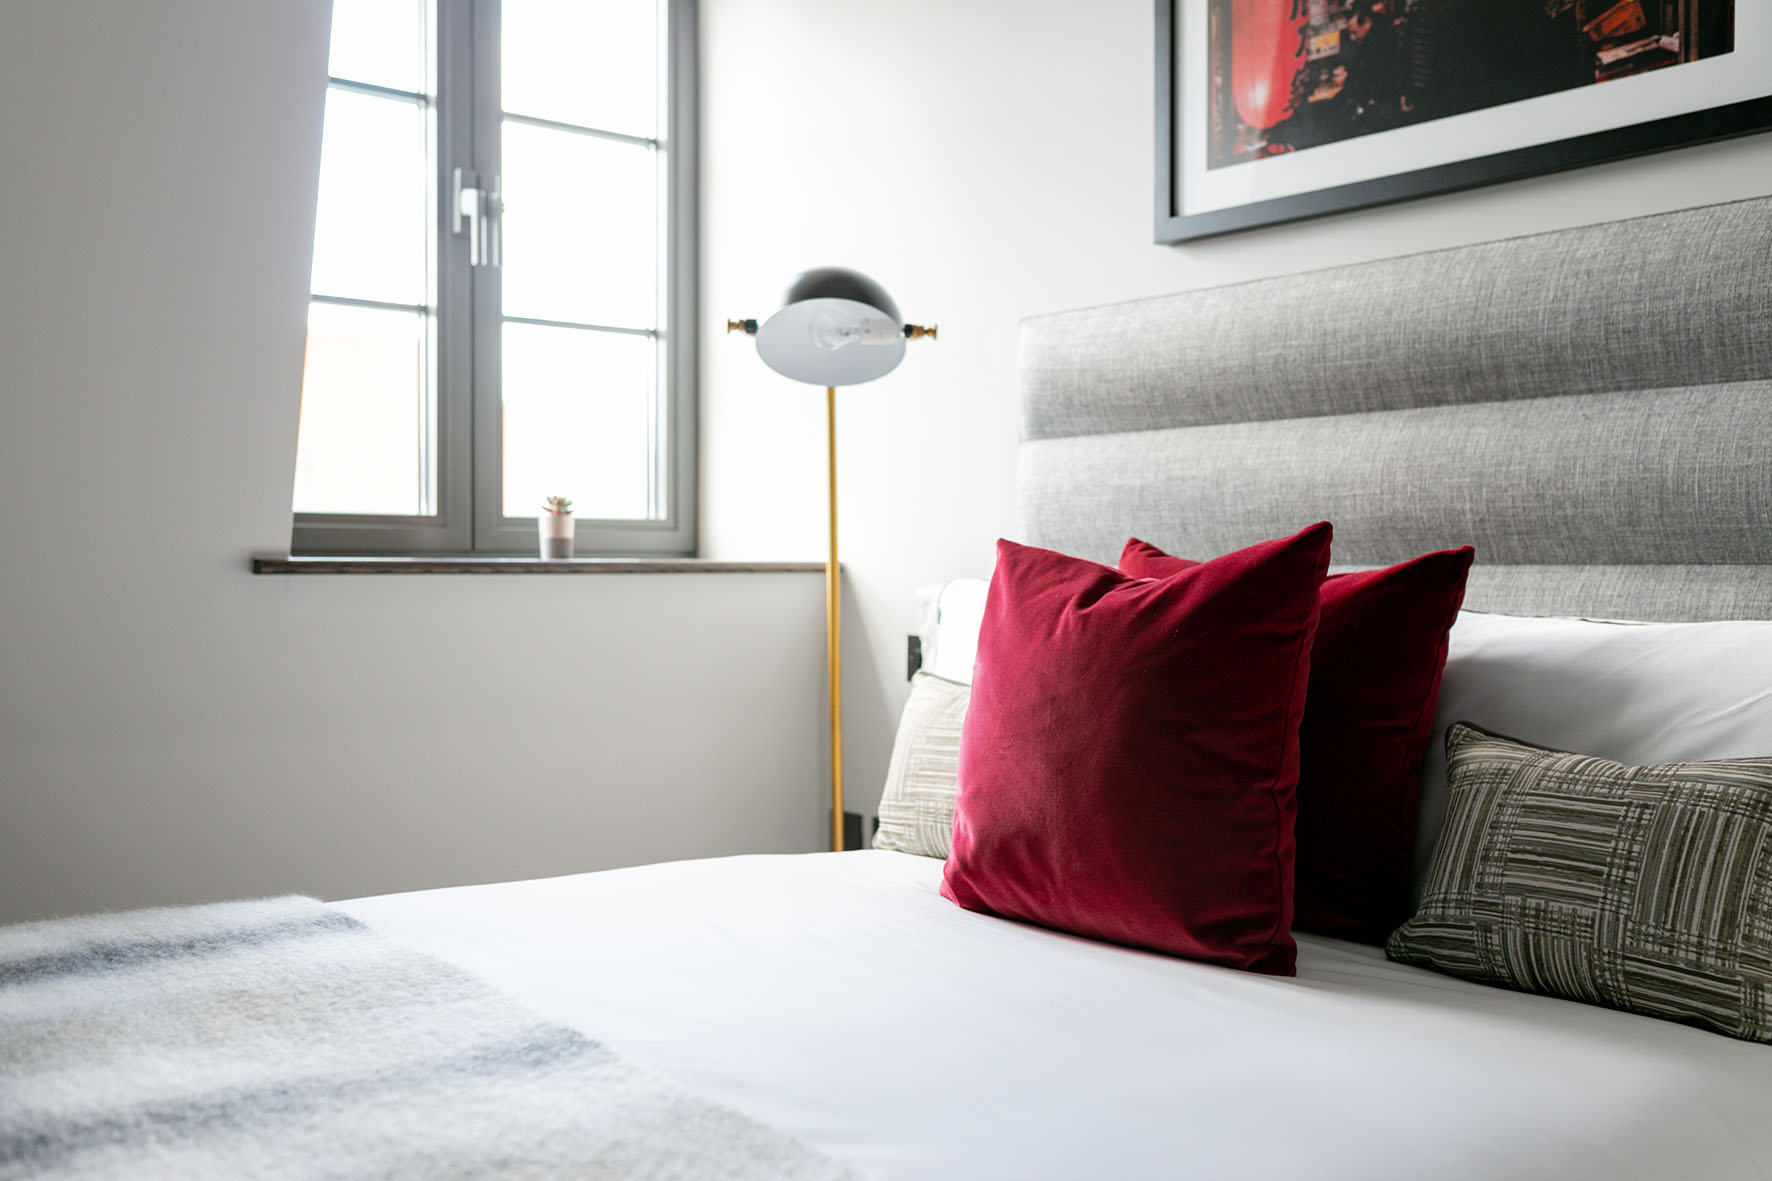 Lovelydays luxury service apartment rental - London - Soho - Great Marlborough St. IX - Lovelysuite - 2 bedrooms - 2 bathrooms - Queen bed - 5 star apartment in london - 1cef9417d9eb - Lovelydays